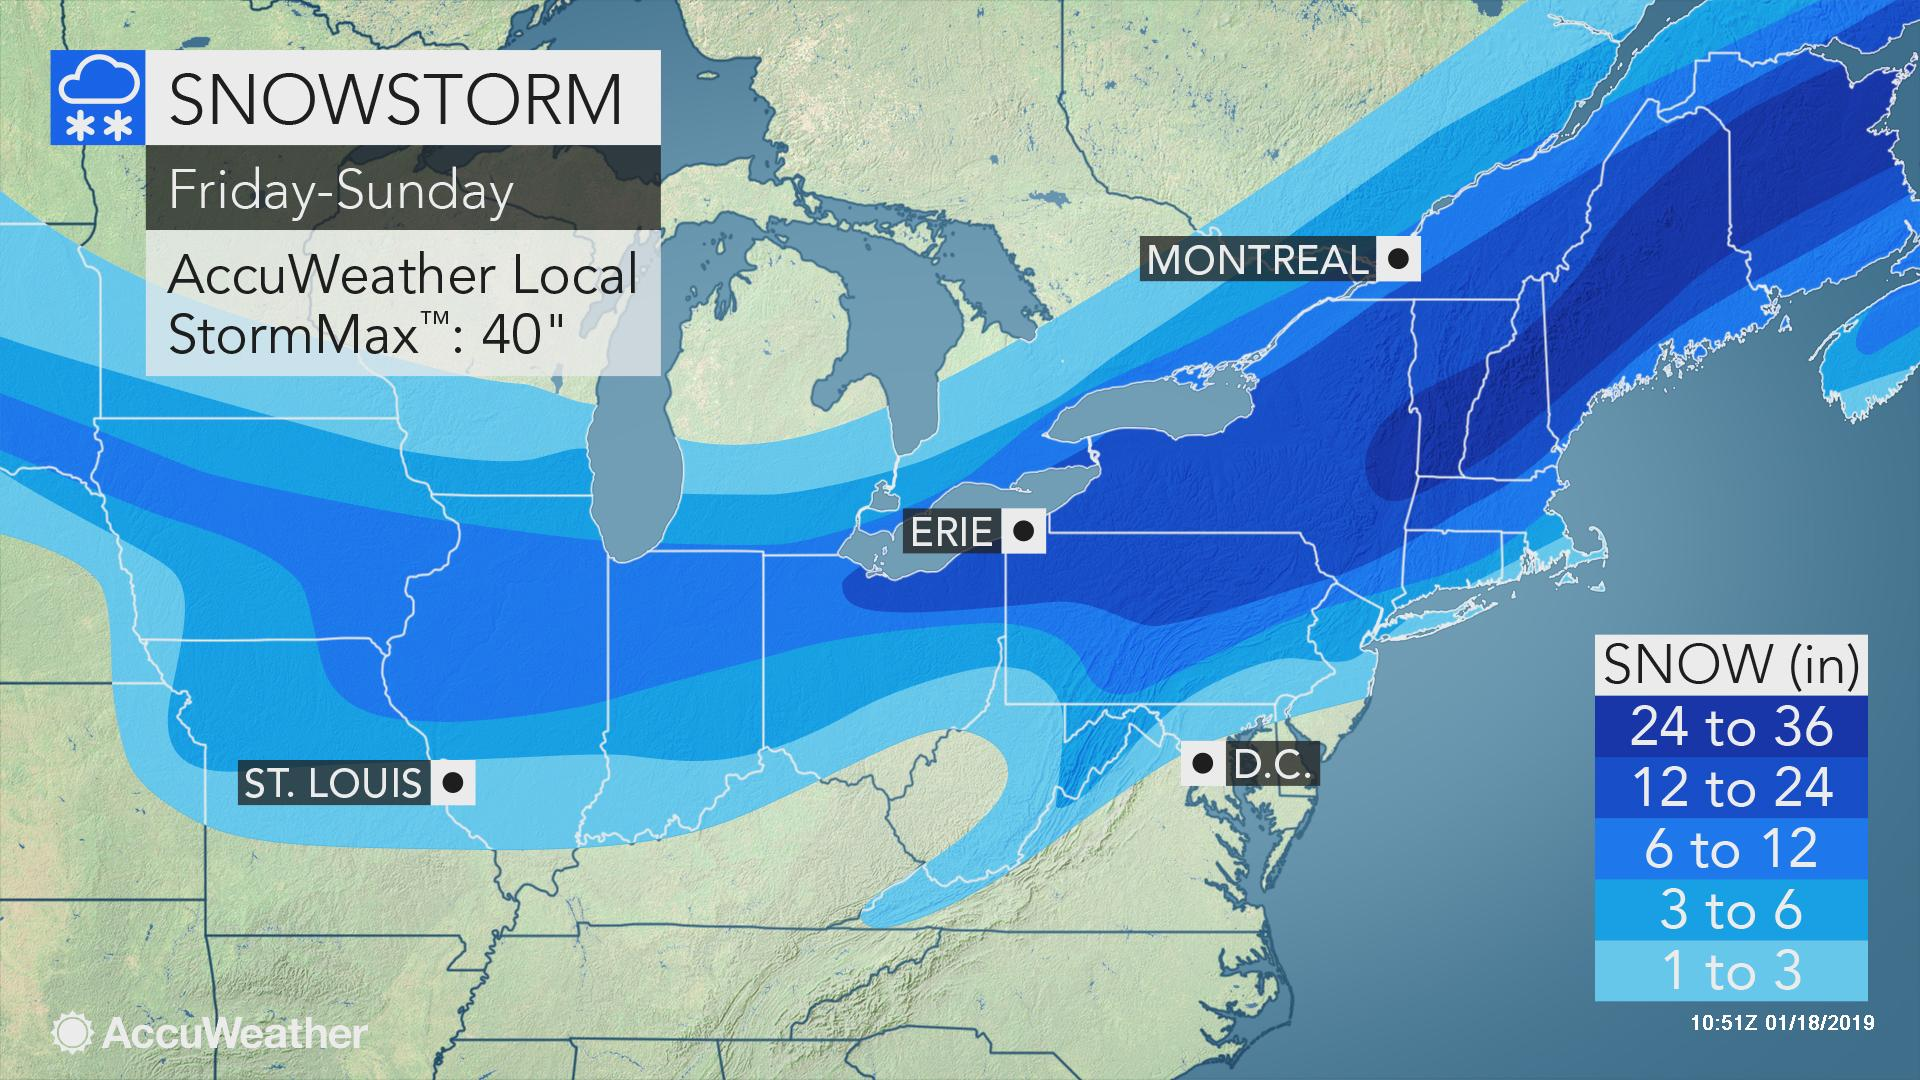 Immobilizing blizzard with feet of snow looms for interior